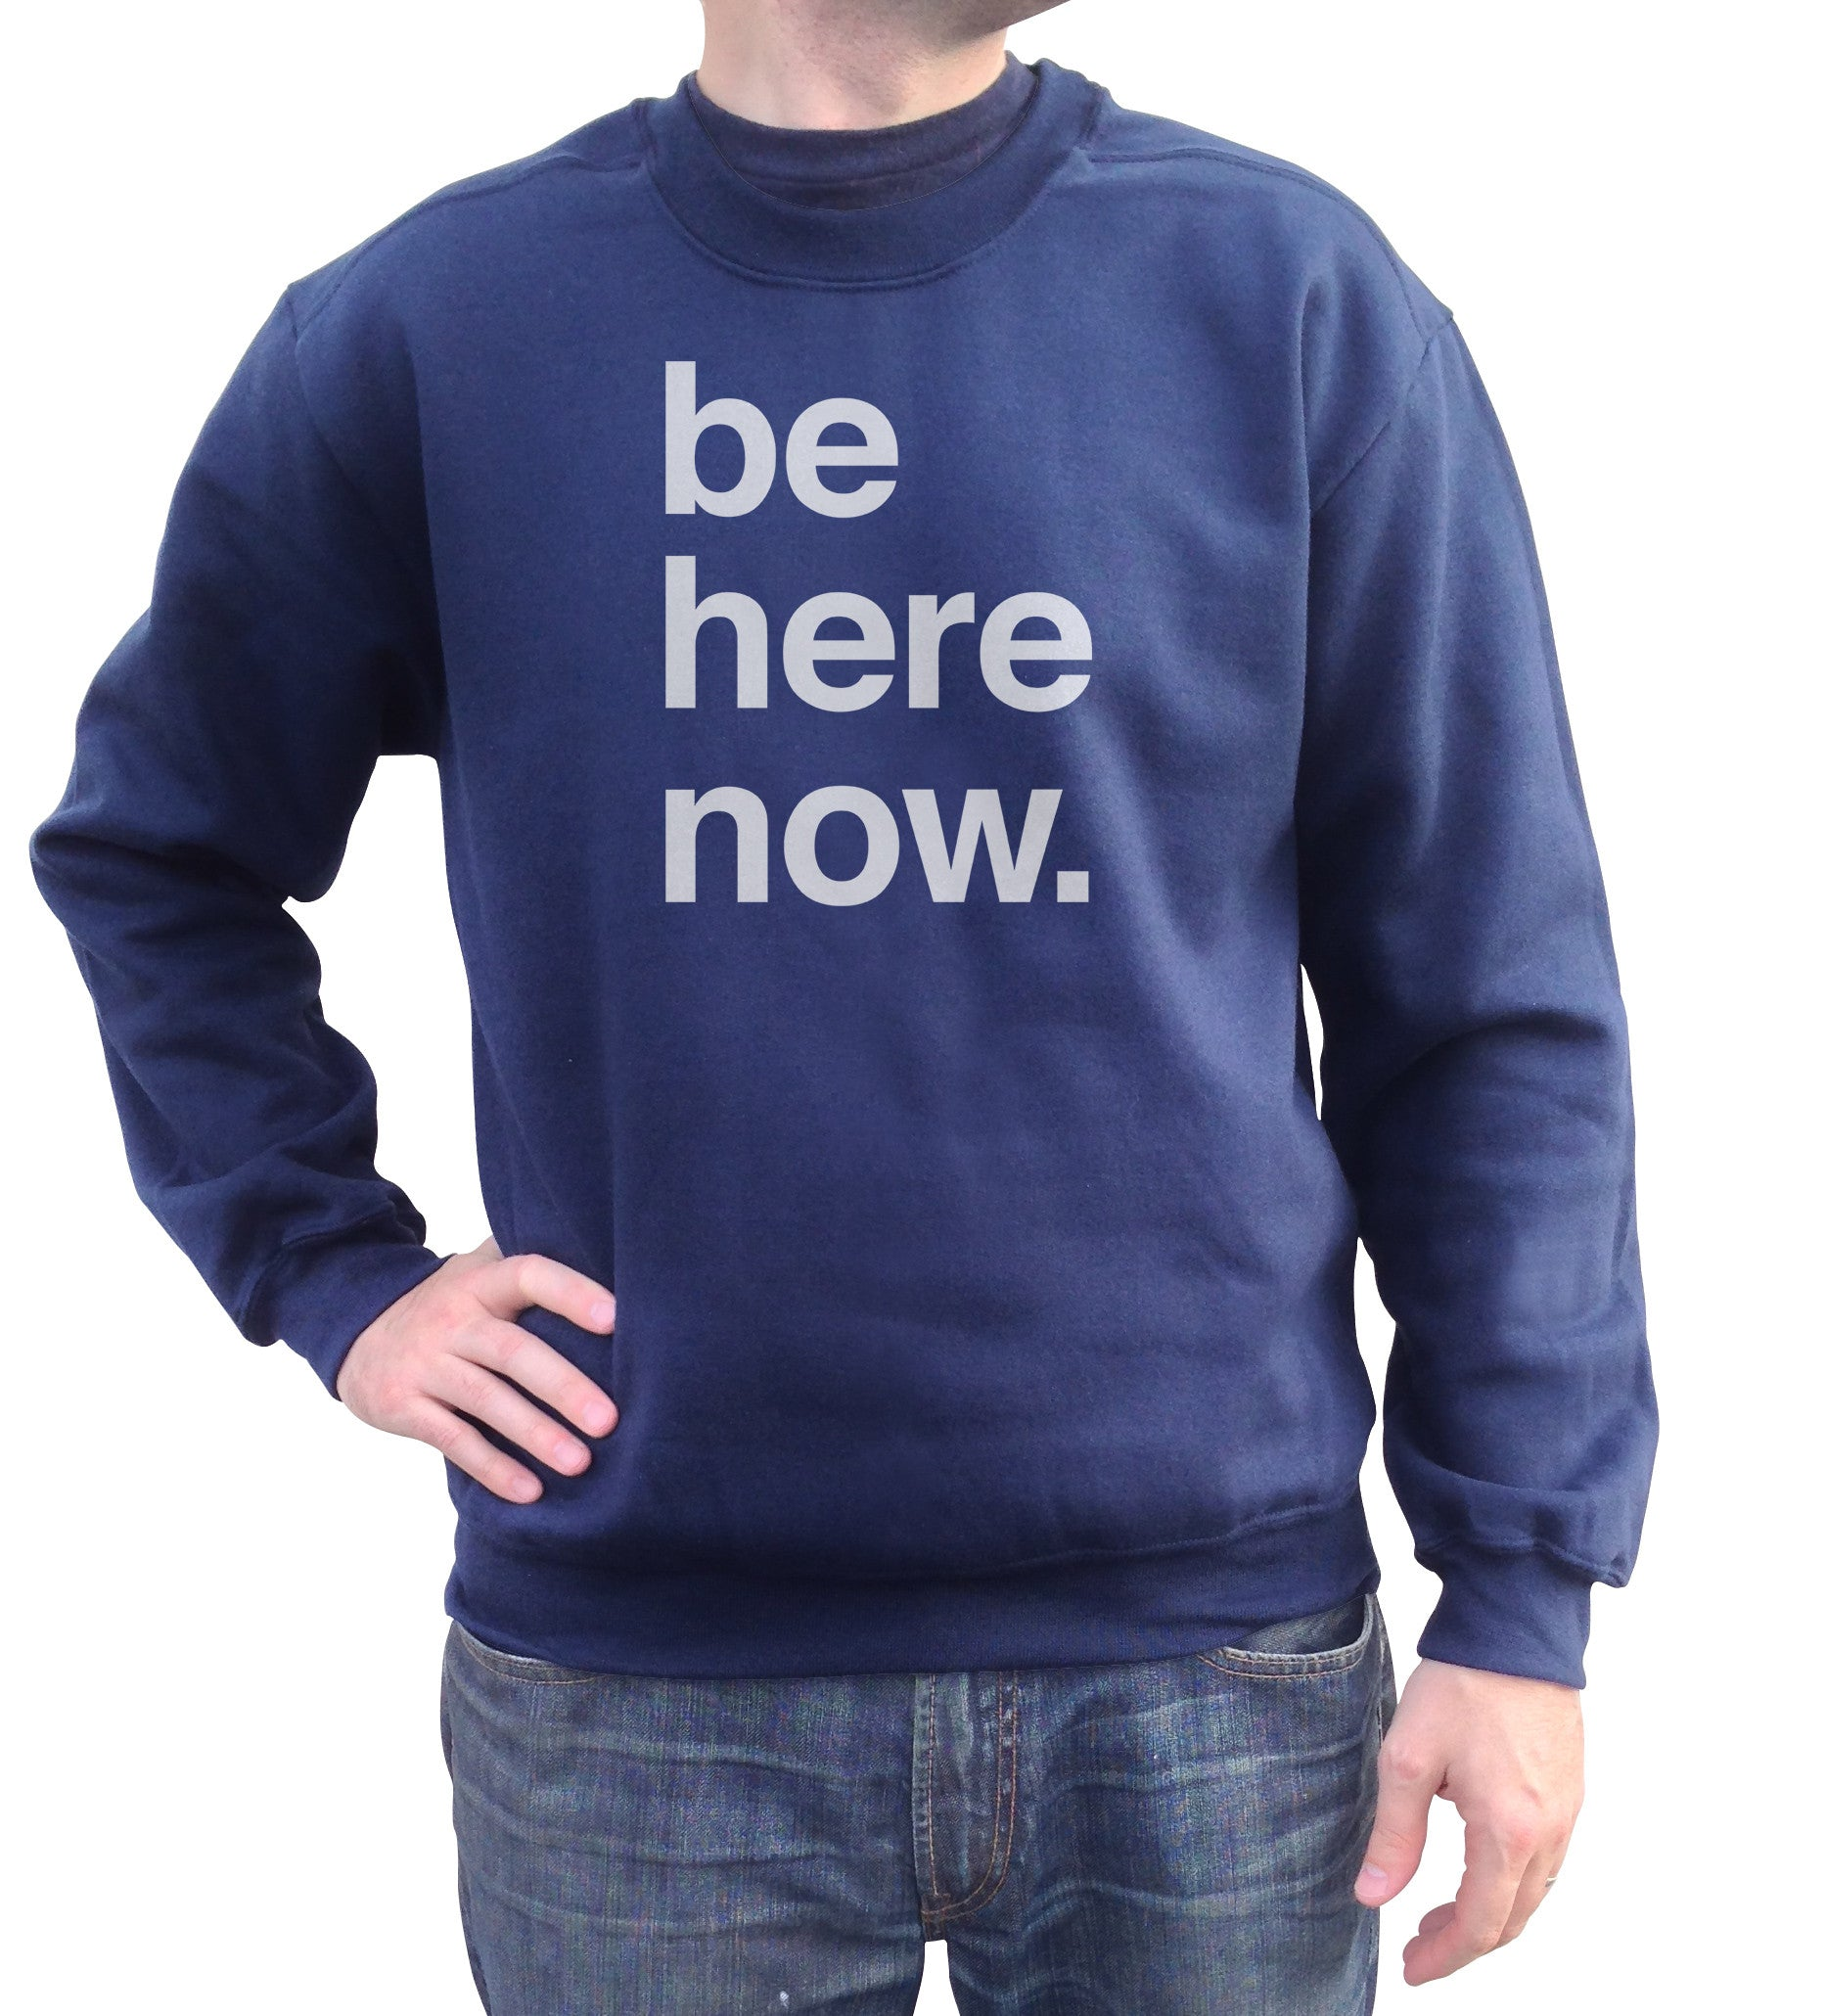 Unisex Be Here Now Sweatshirt - New Age Mindfulness Meditation Shirt